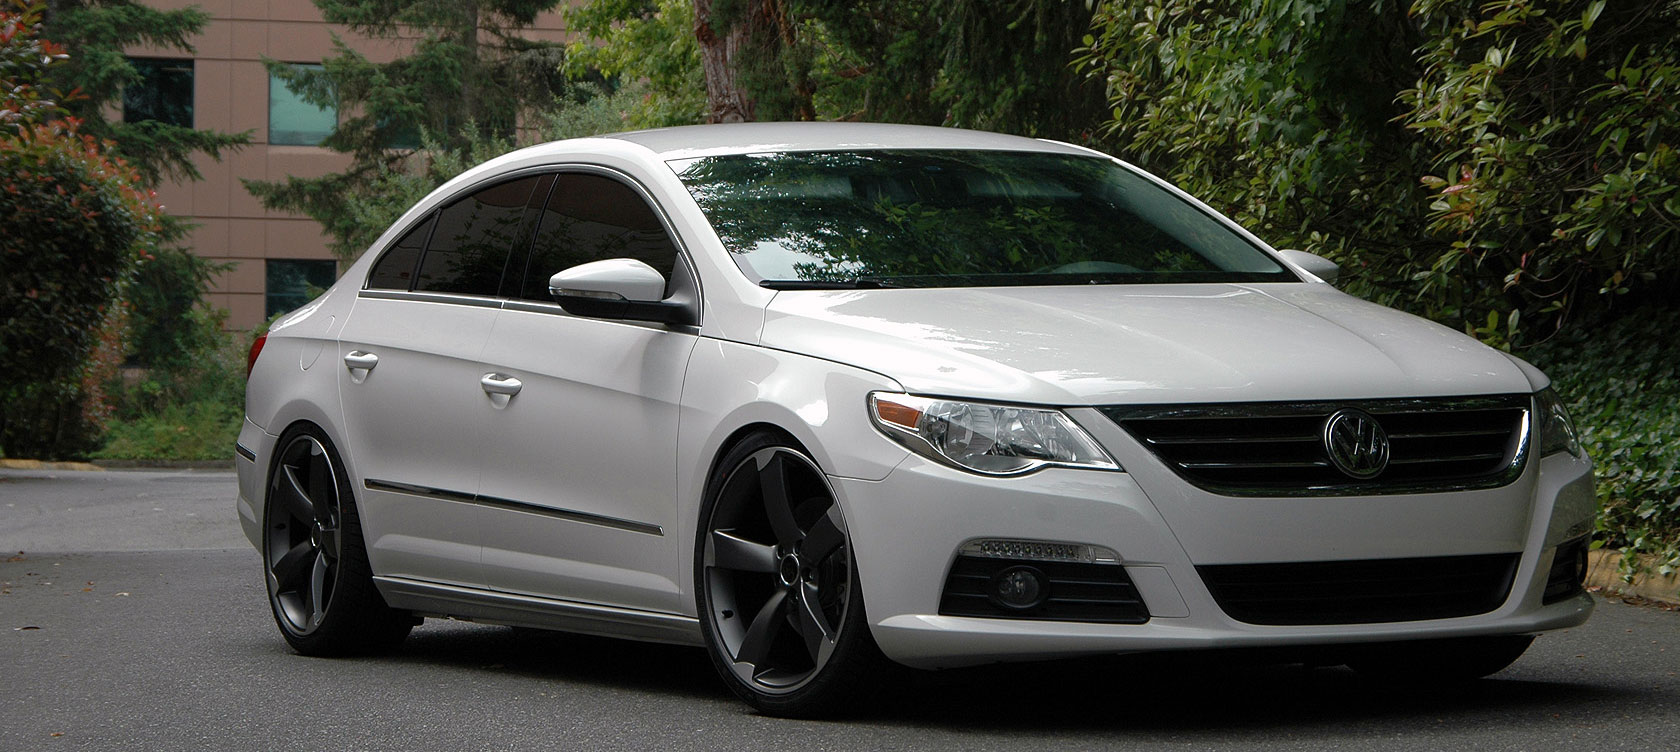 Performance parts and upgrades for VW CC - Achtuning